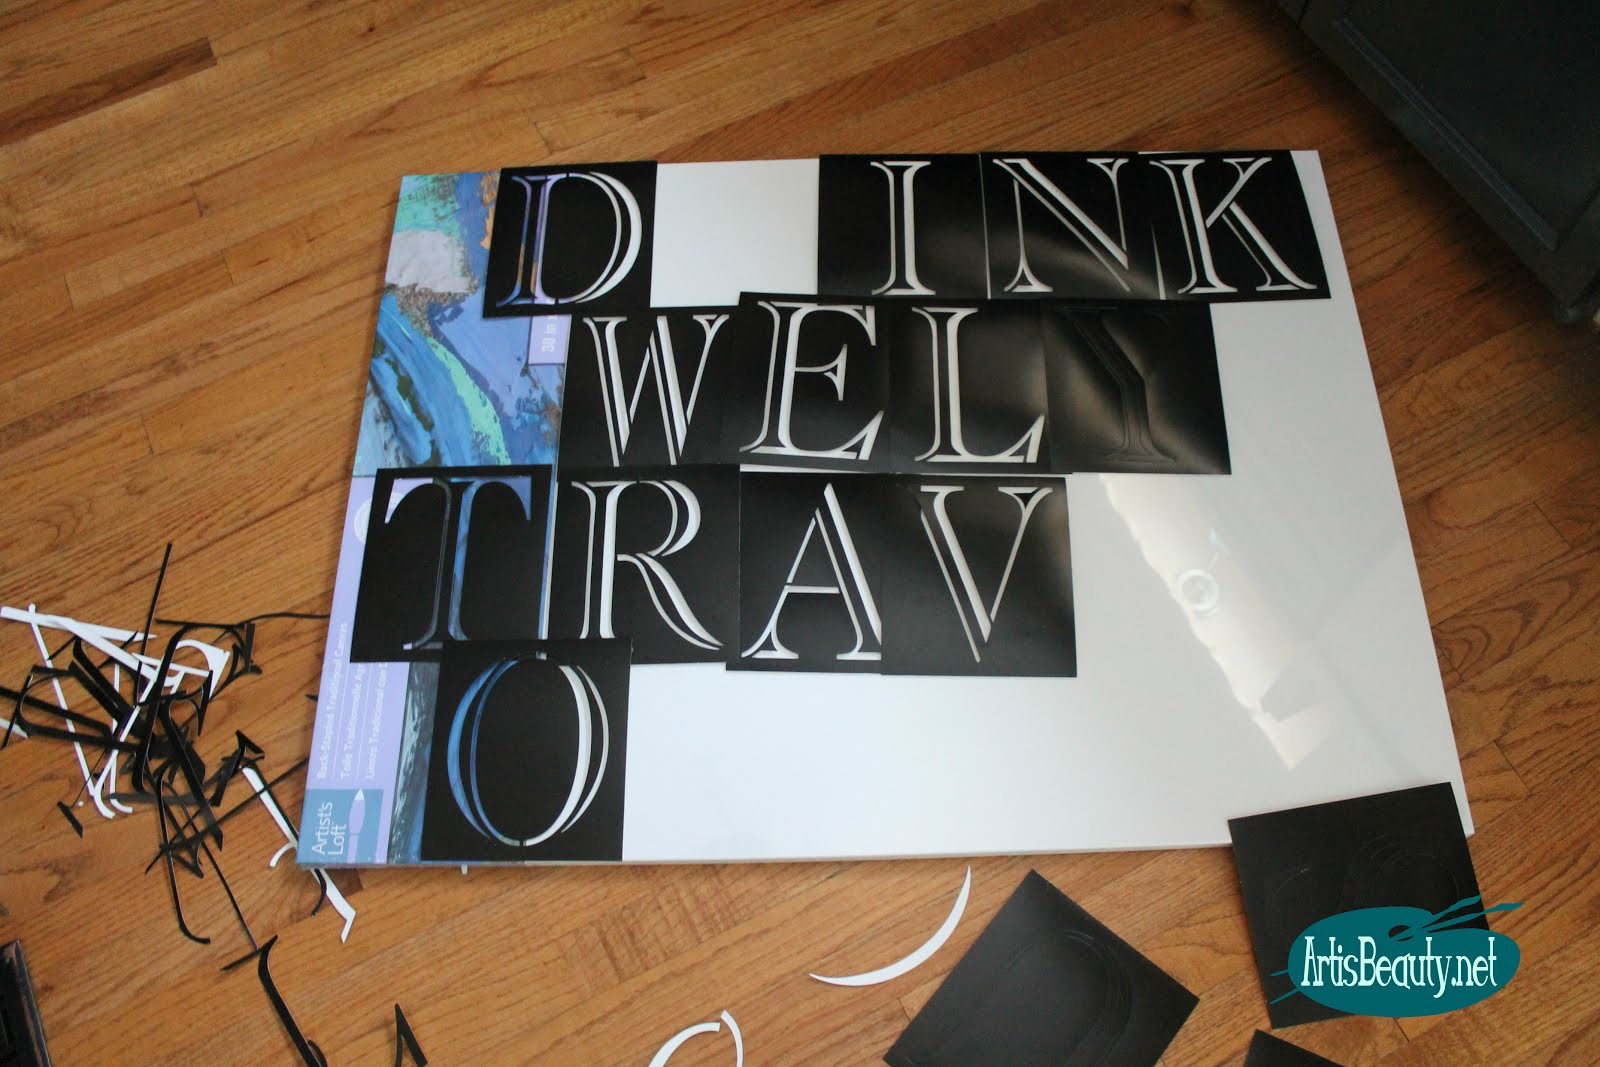 Drink Well Travel Often Word Art Large Scale Diy Canvas Art Boho Home Chic Decor